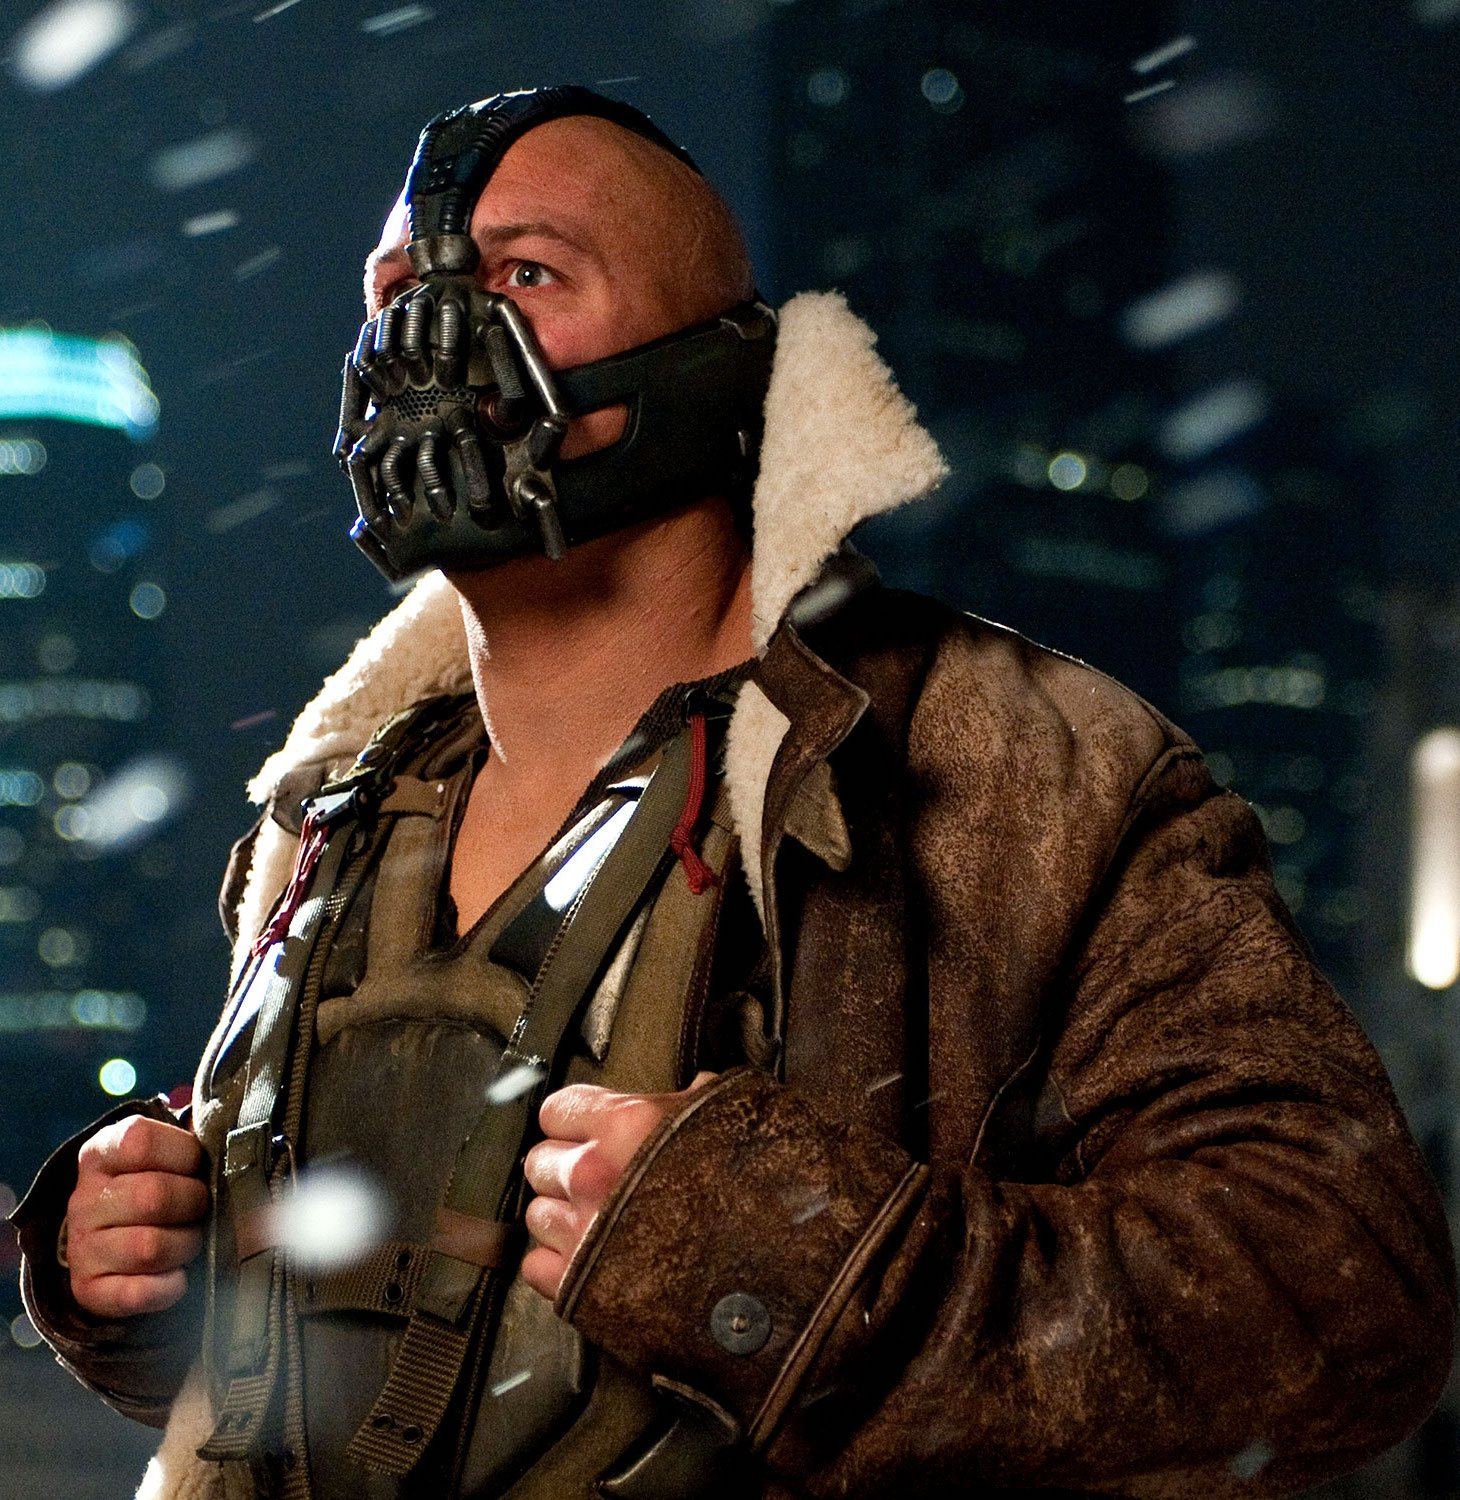 the dark knight rises review 25 Things You Didn't Know About The Dark Knight Rises